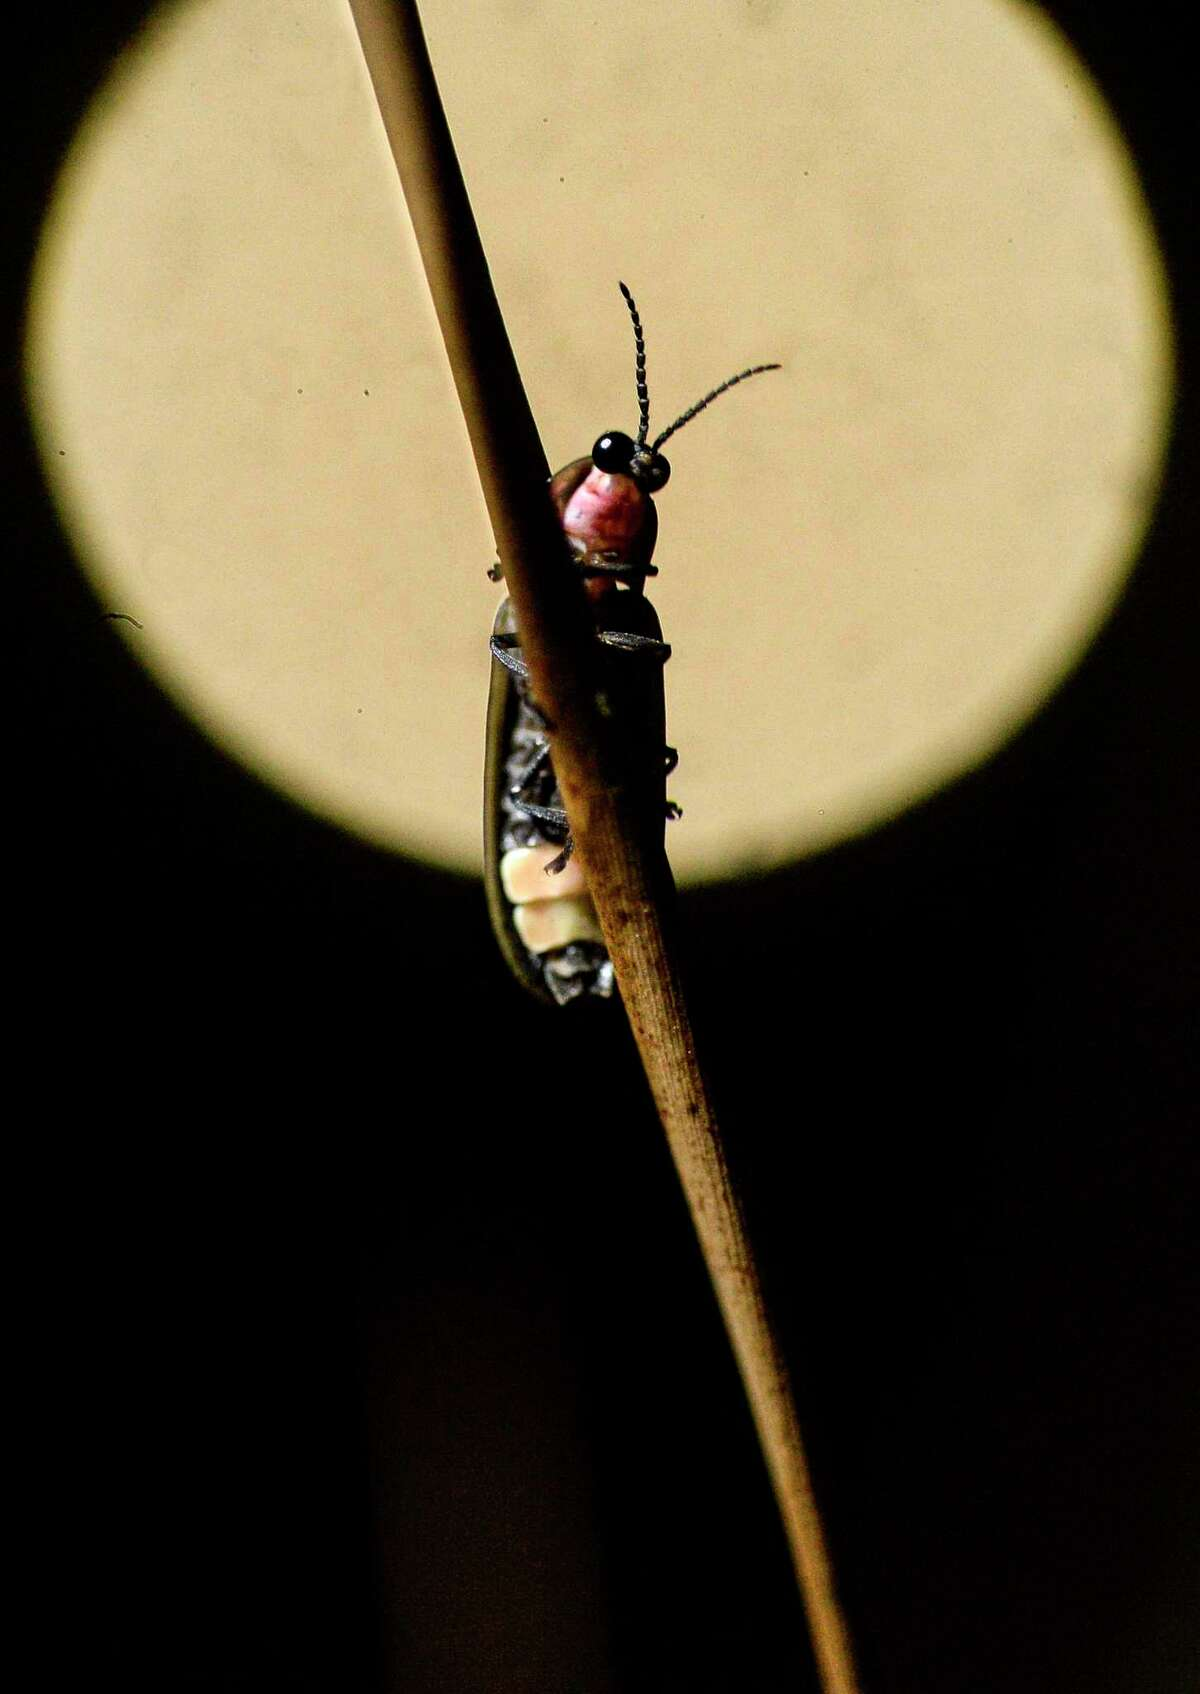 A file photo of a firefly climbing a grass stem with a June strawberry moon in the background.